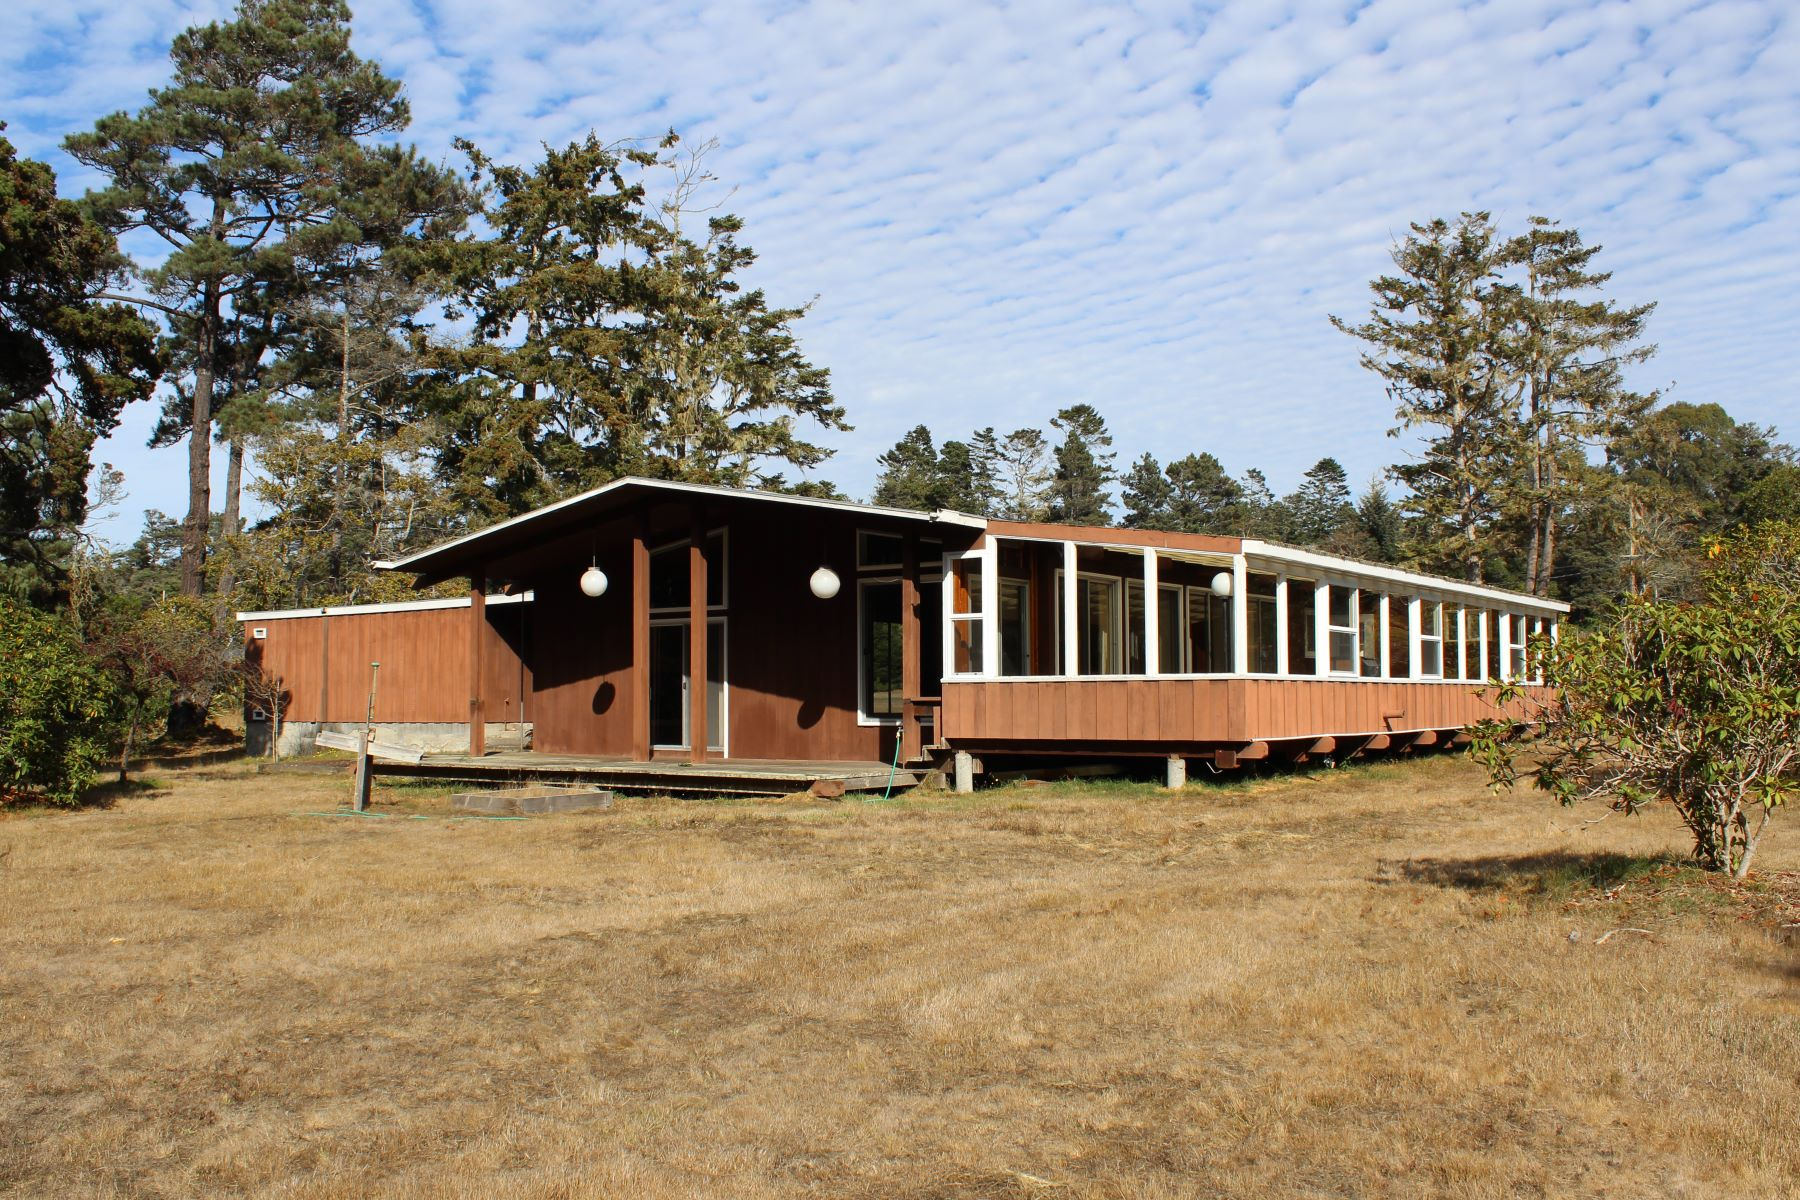 Single Family Home for Sale at Mid-Century Jewel 24650 Ward Avenue Fort Bragg, California 95437 United States